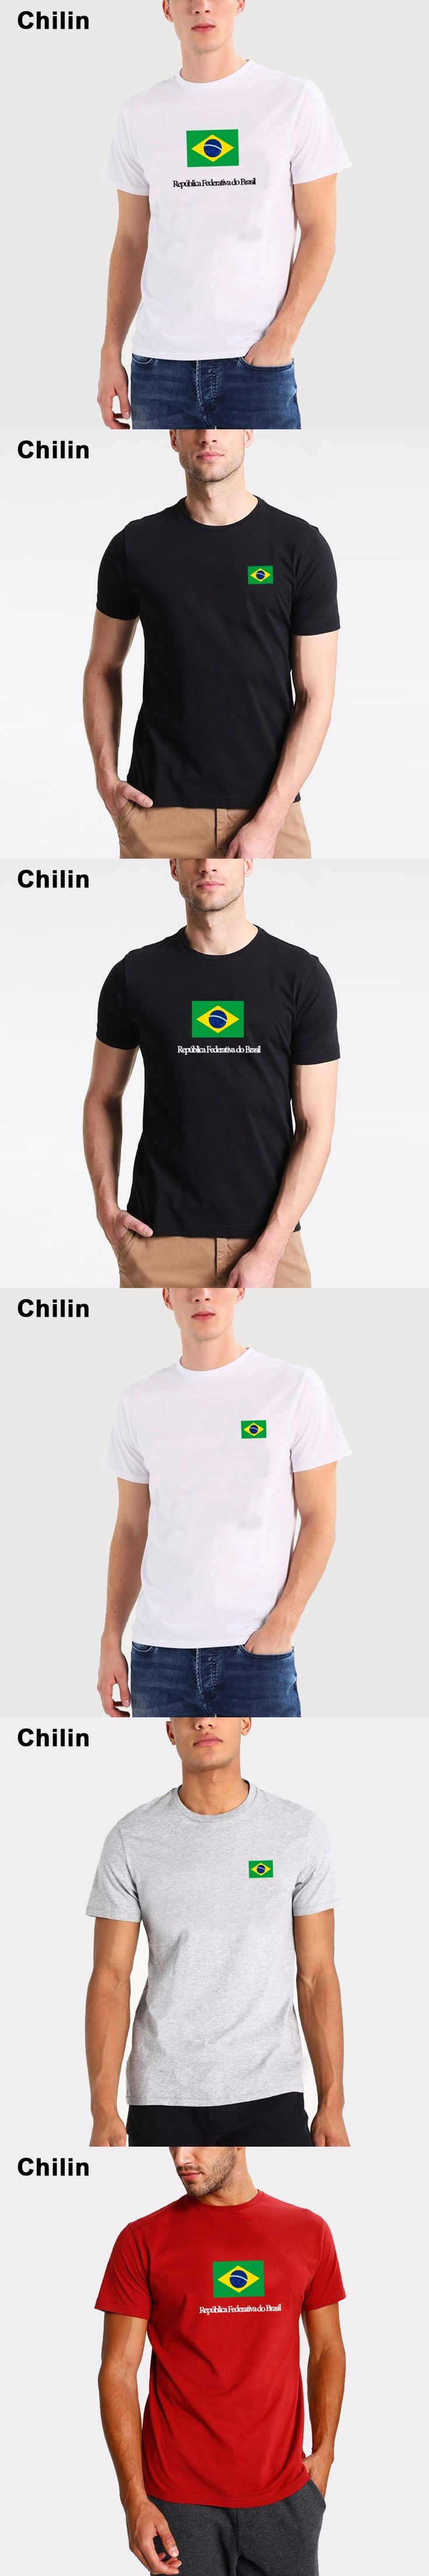 Chilin New Tops Summer Brazil Flag Fans Men T shirts Cotton Nostalgia Brazil Flag Style Rio Games Fitness T-shirts for Men